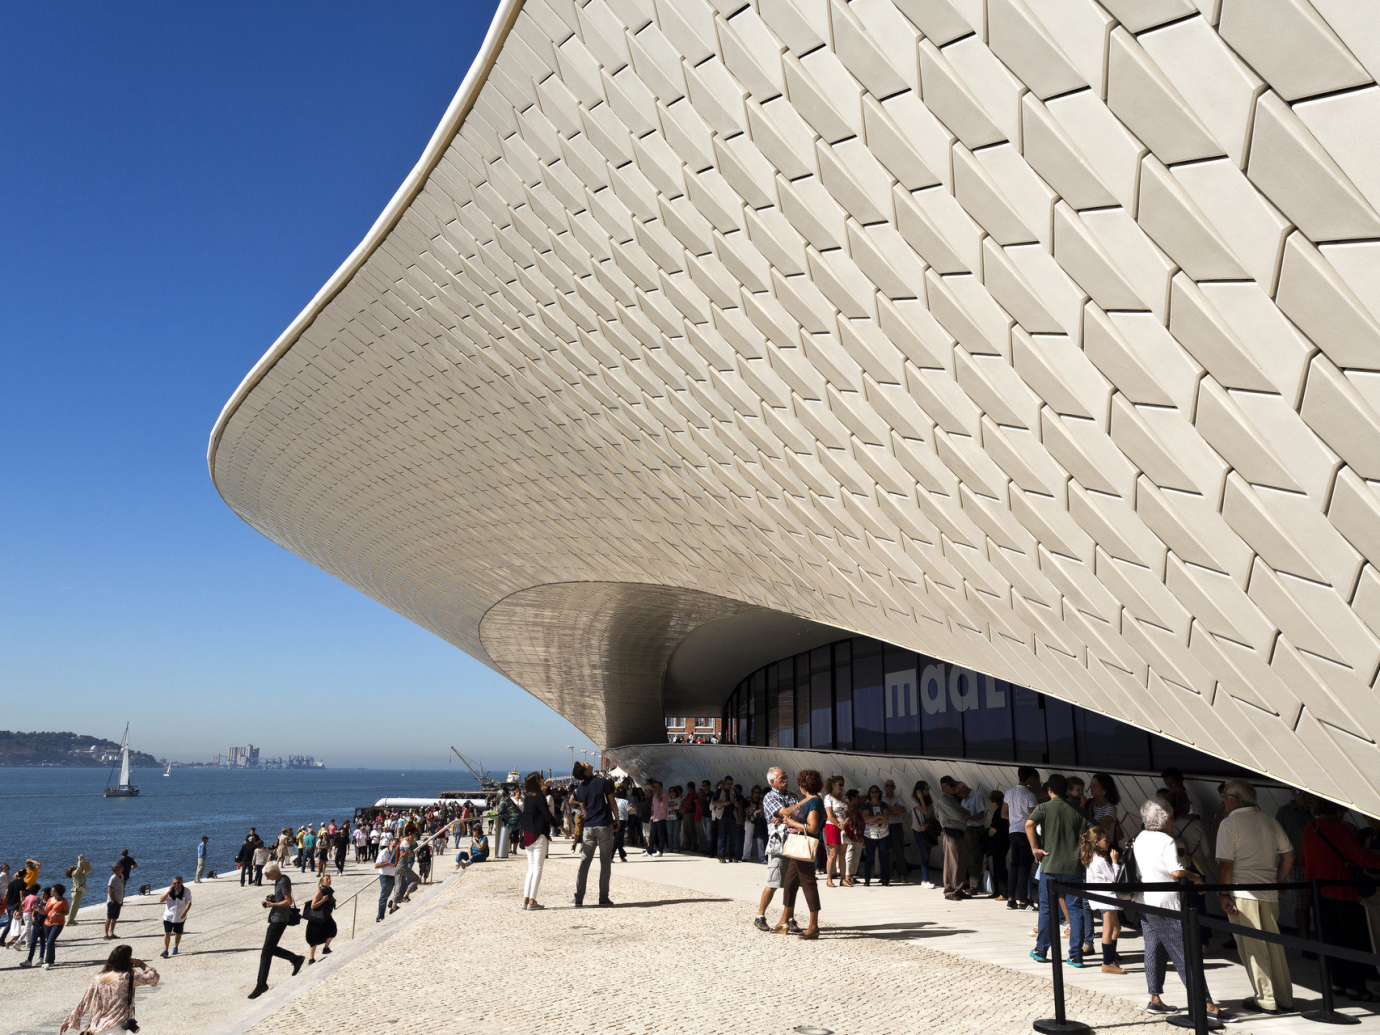 Exterior of the MAAT Museum surrounded by people